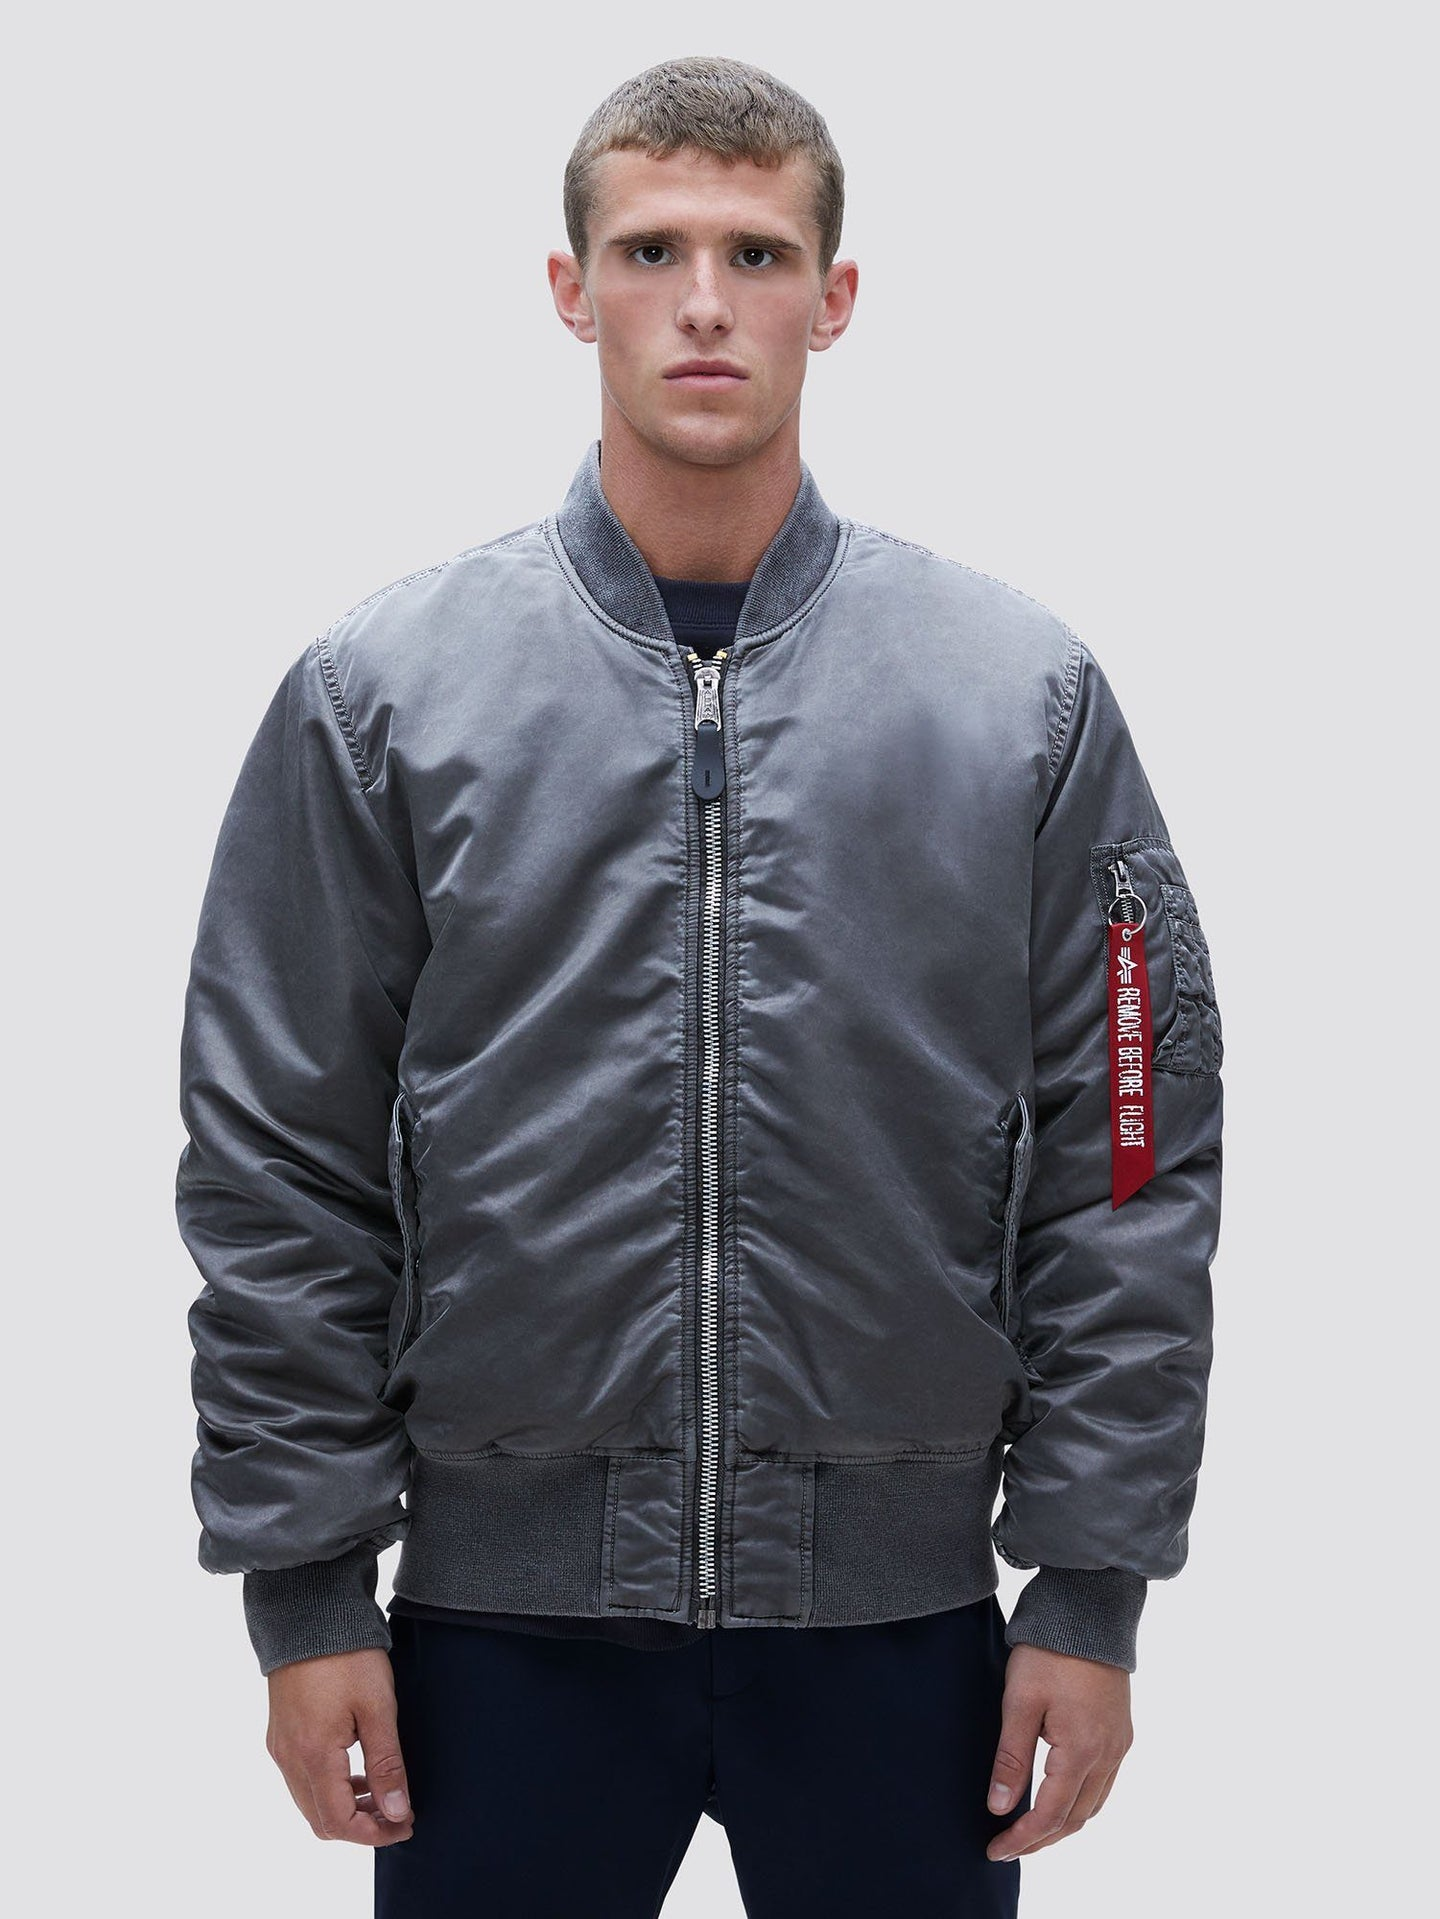 MA-1 BLOOD CHIT BATTLEWASH BOMBER JACKET SALE Alpha Industries NEW SILVER 2XL